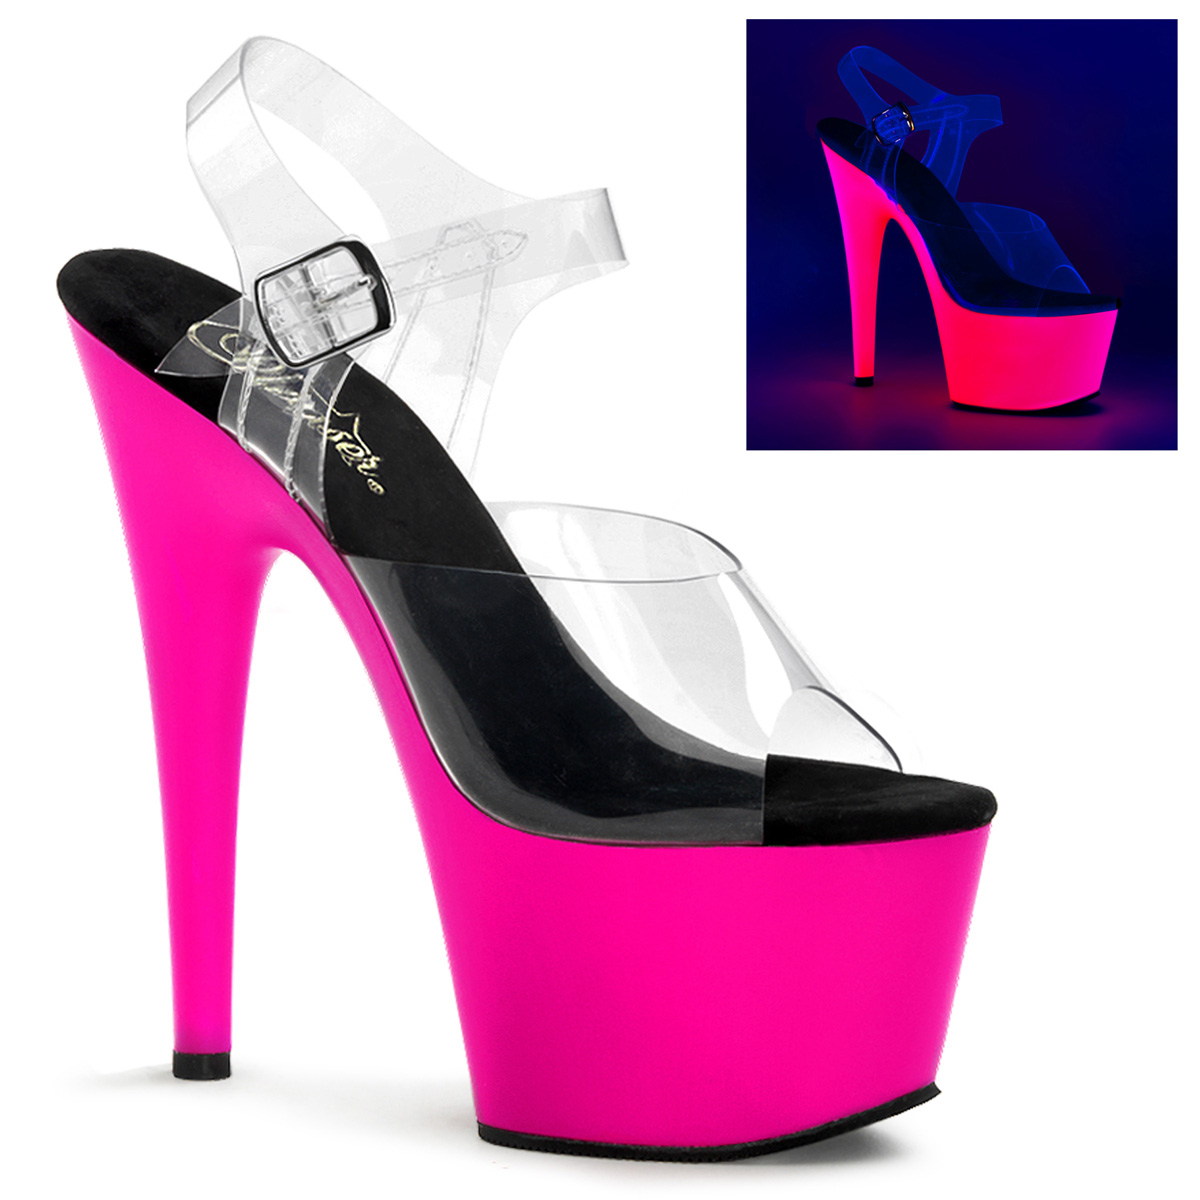 Pleaser SHOES & BOOTS : Platforms (Exotic Dancing) : Specialty ...